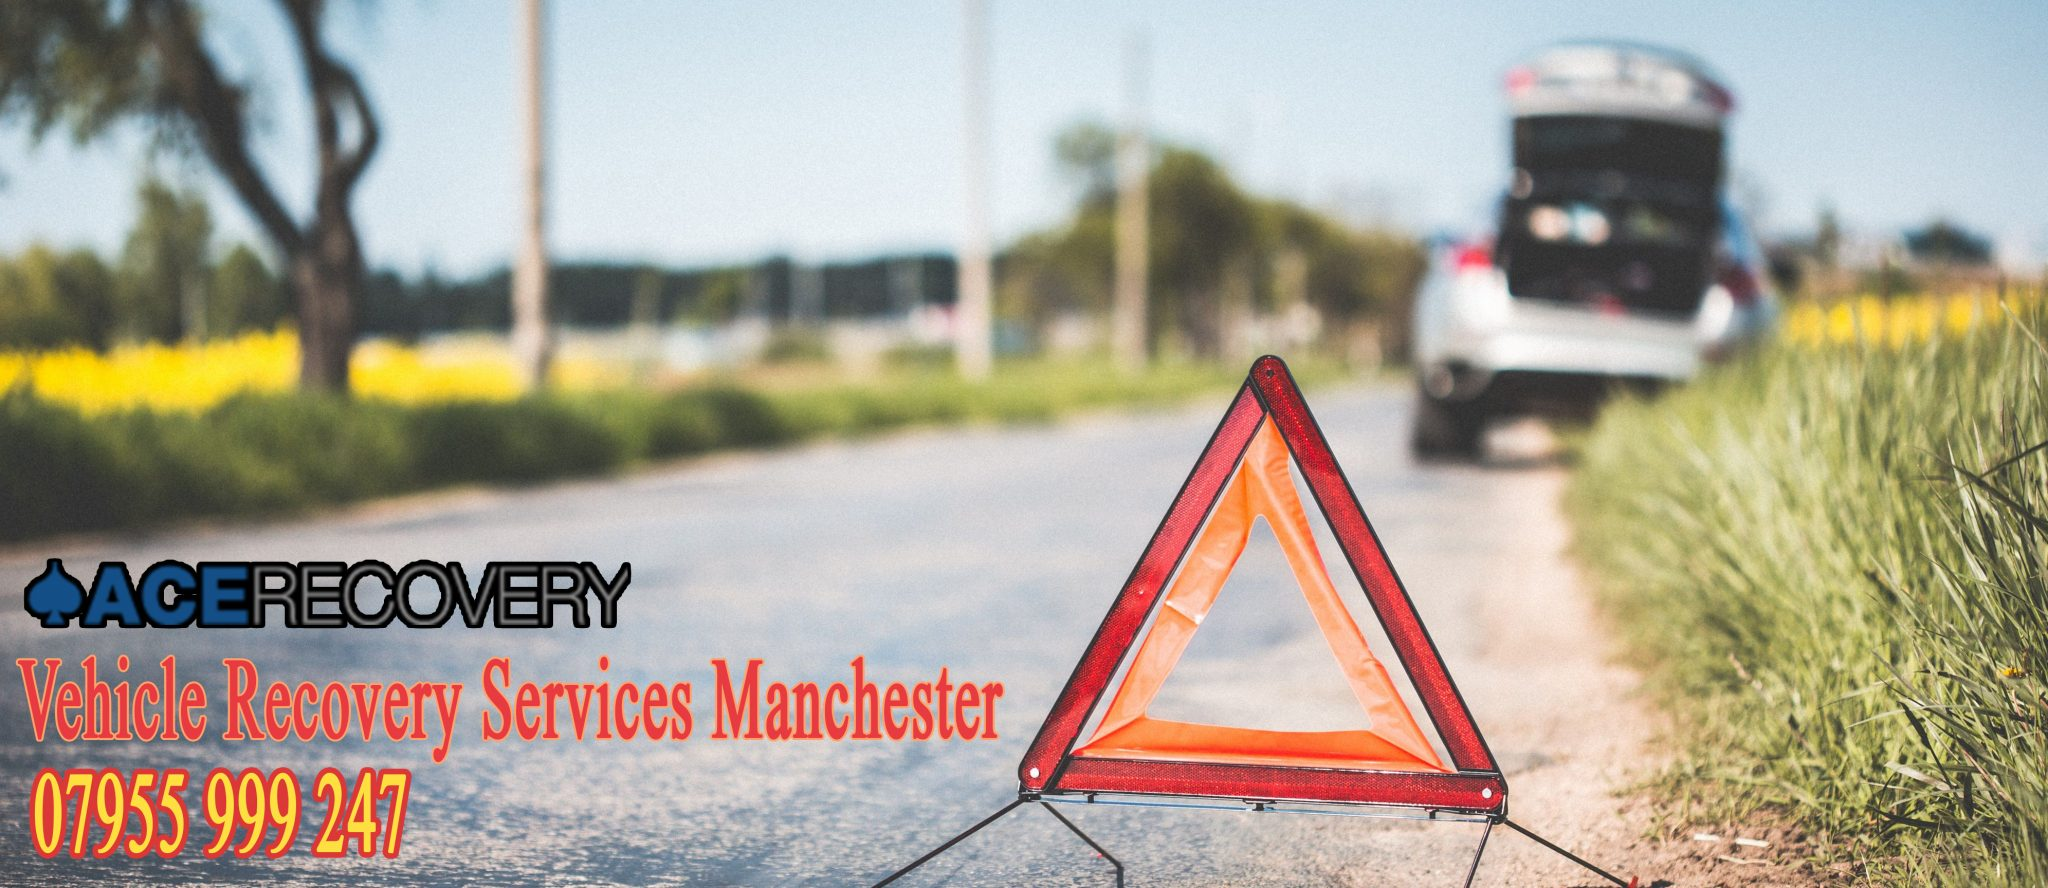 The Needs of Vehicle Recovery Services in Manchester